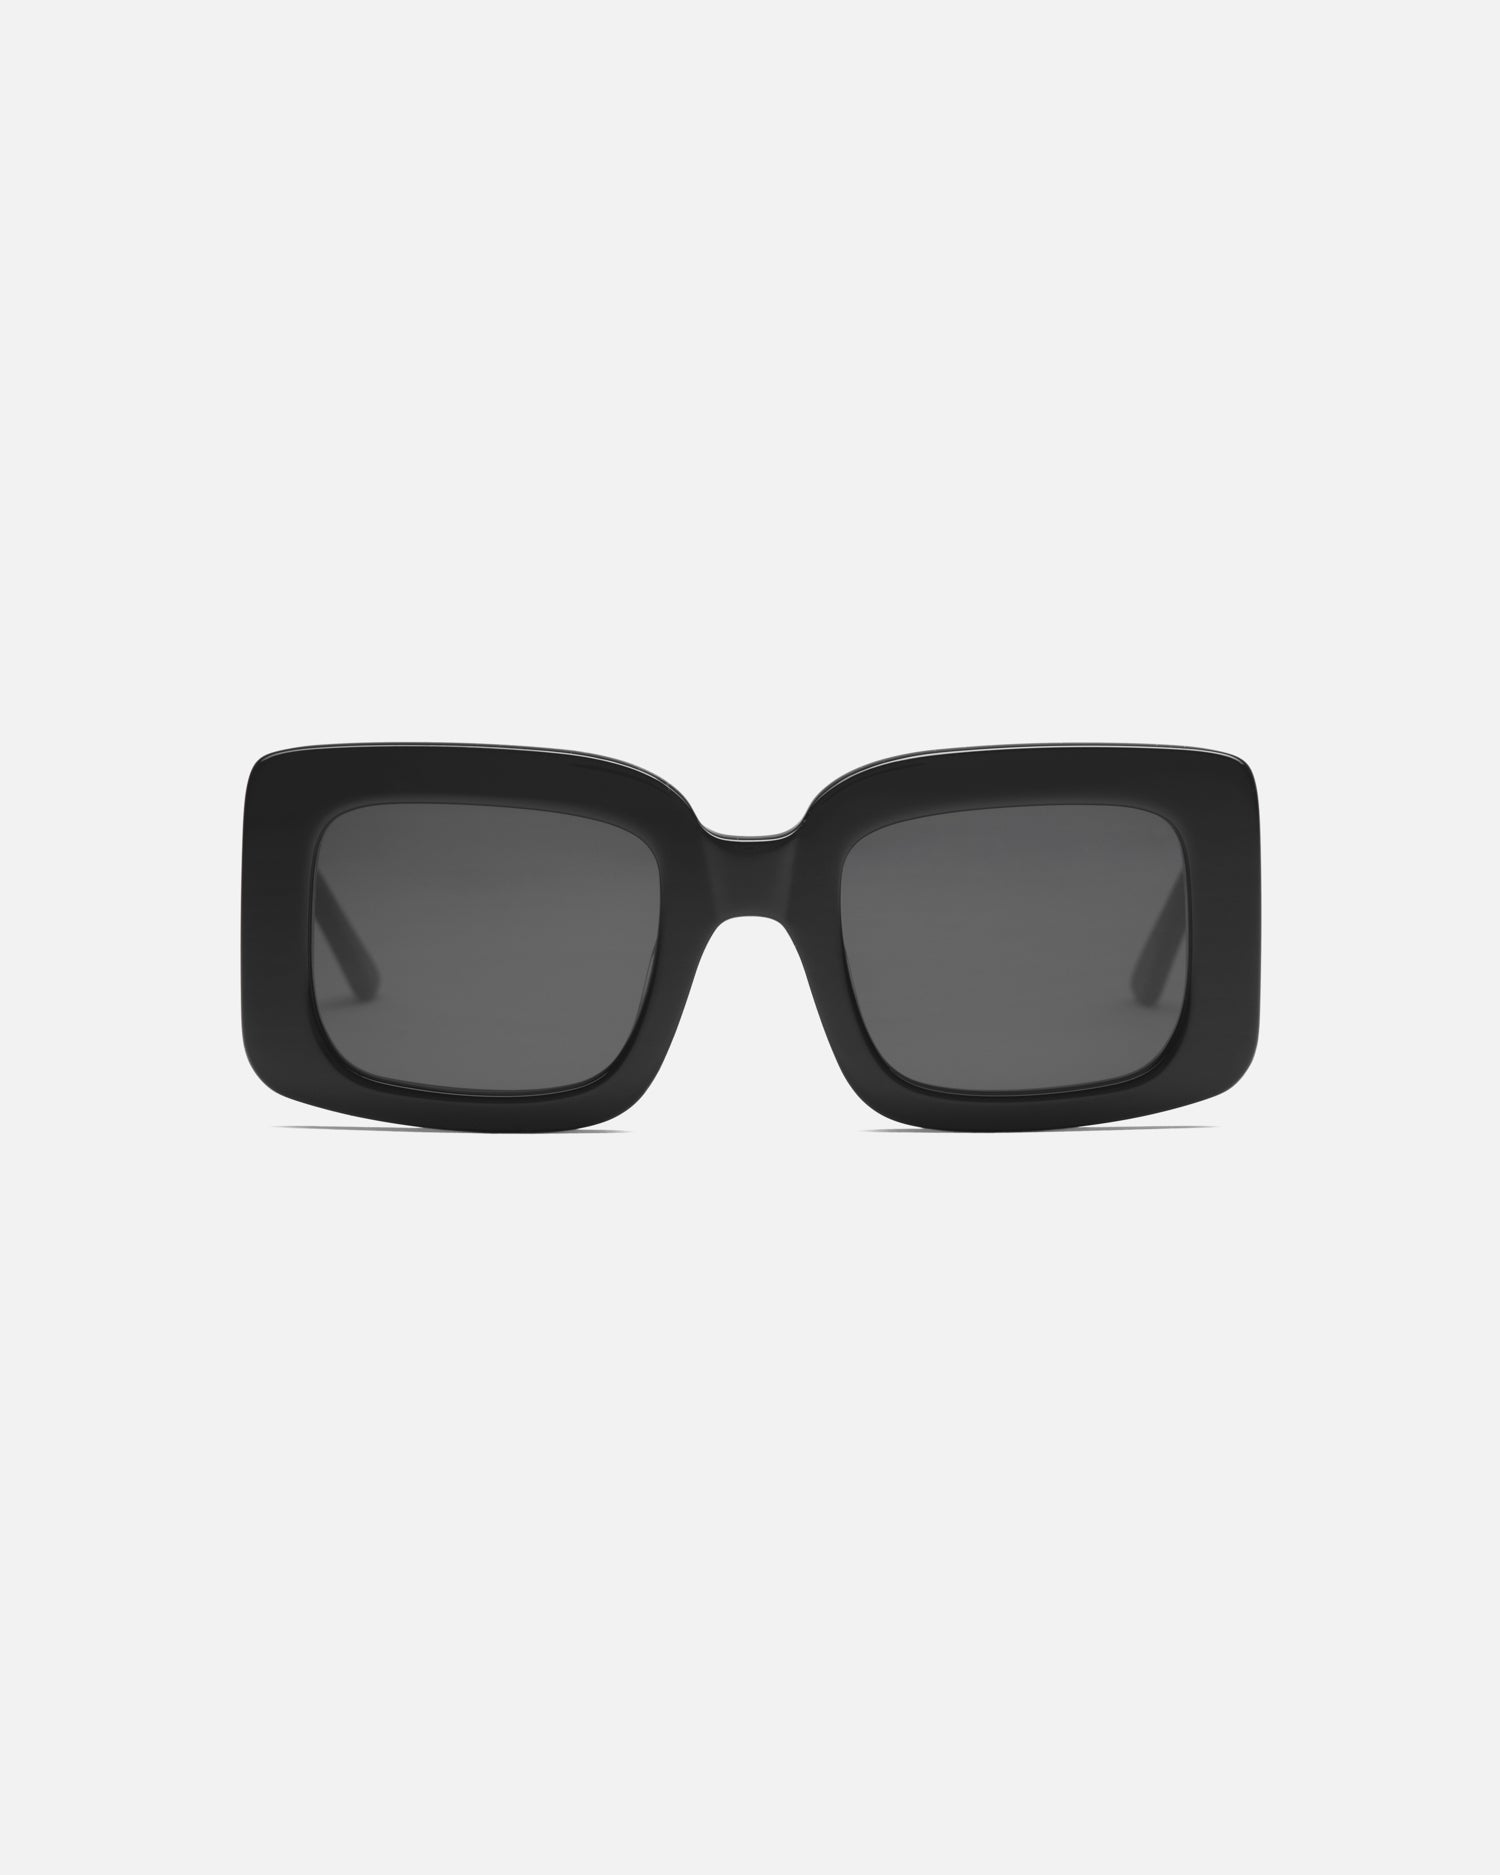 Lu Goldie Mia oversize square Sunglasses in black acetate with black lenses, front